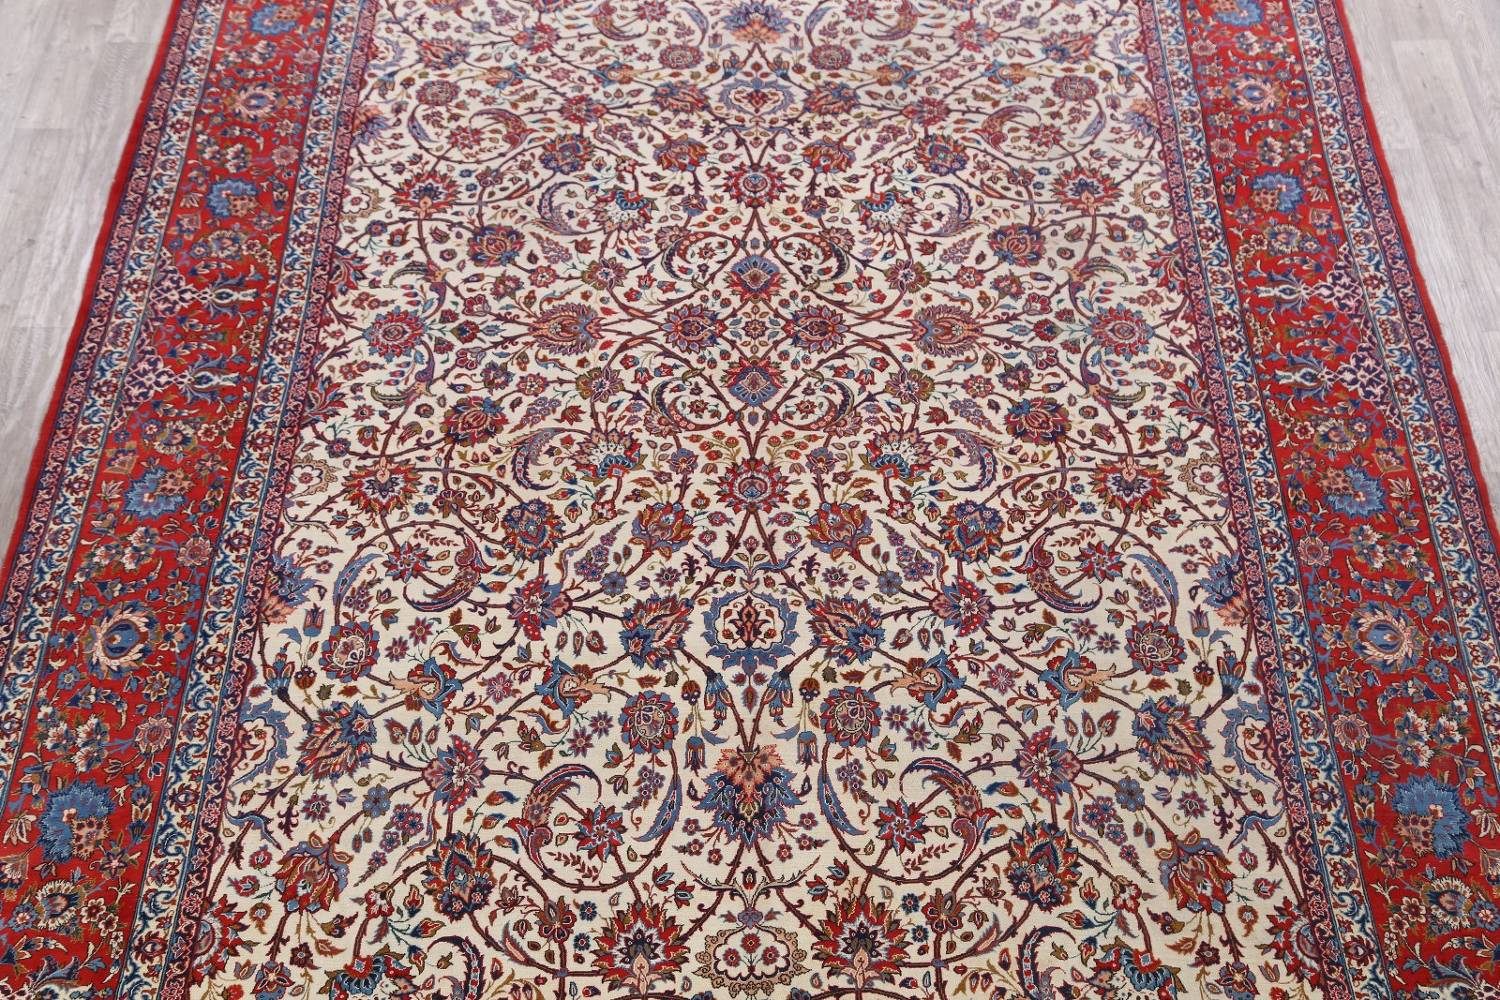 Antique Floral 10x16 Isfahan Persian Area Rug image 3